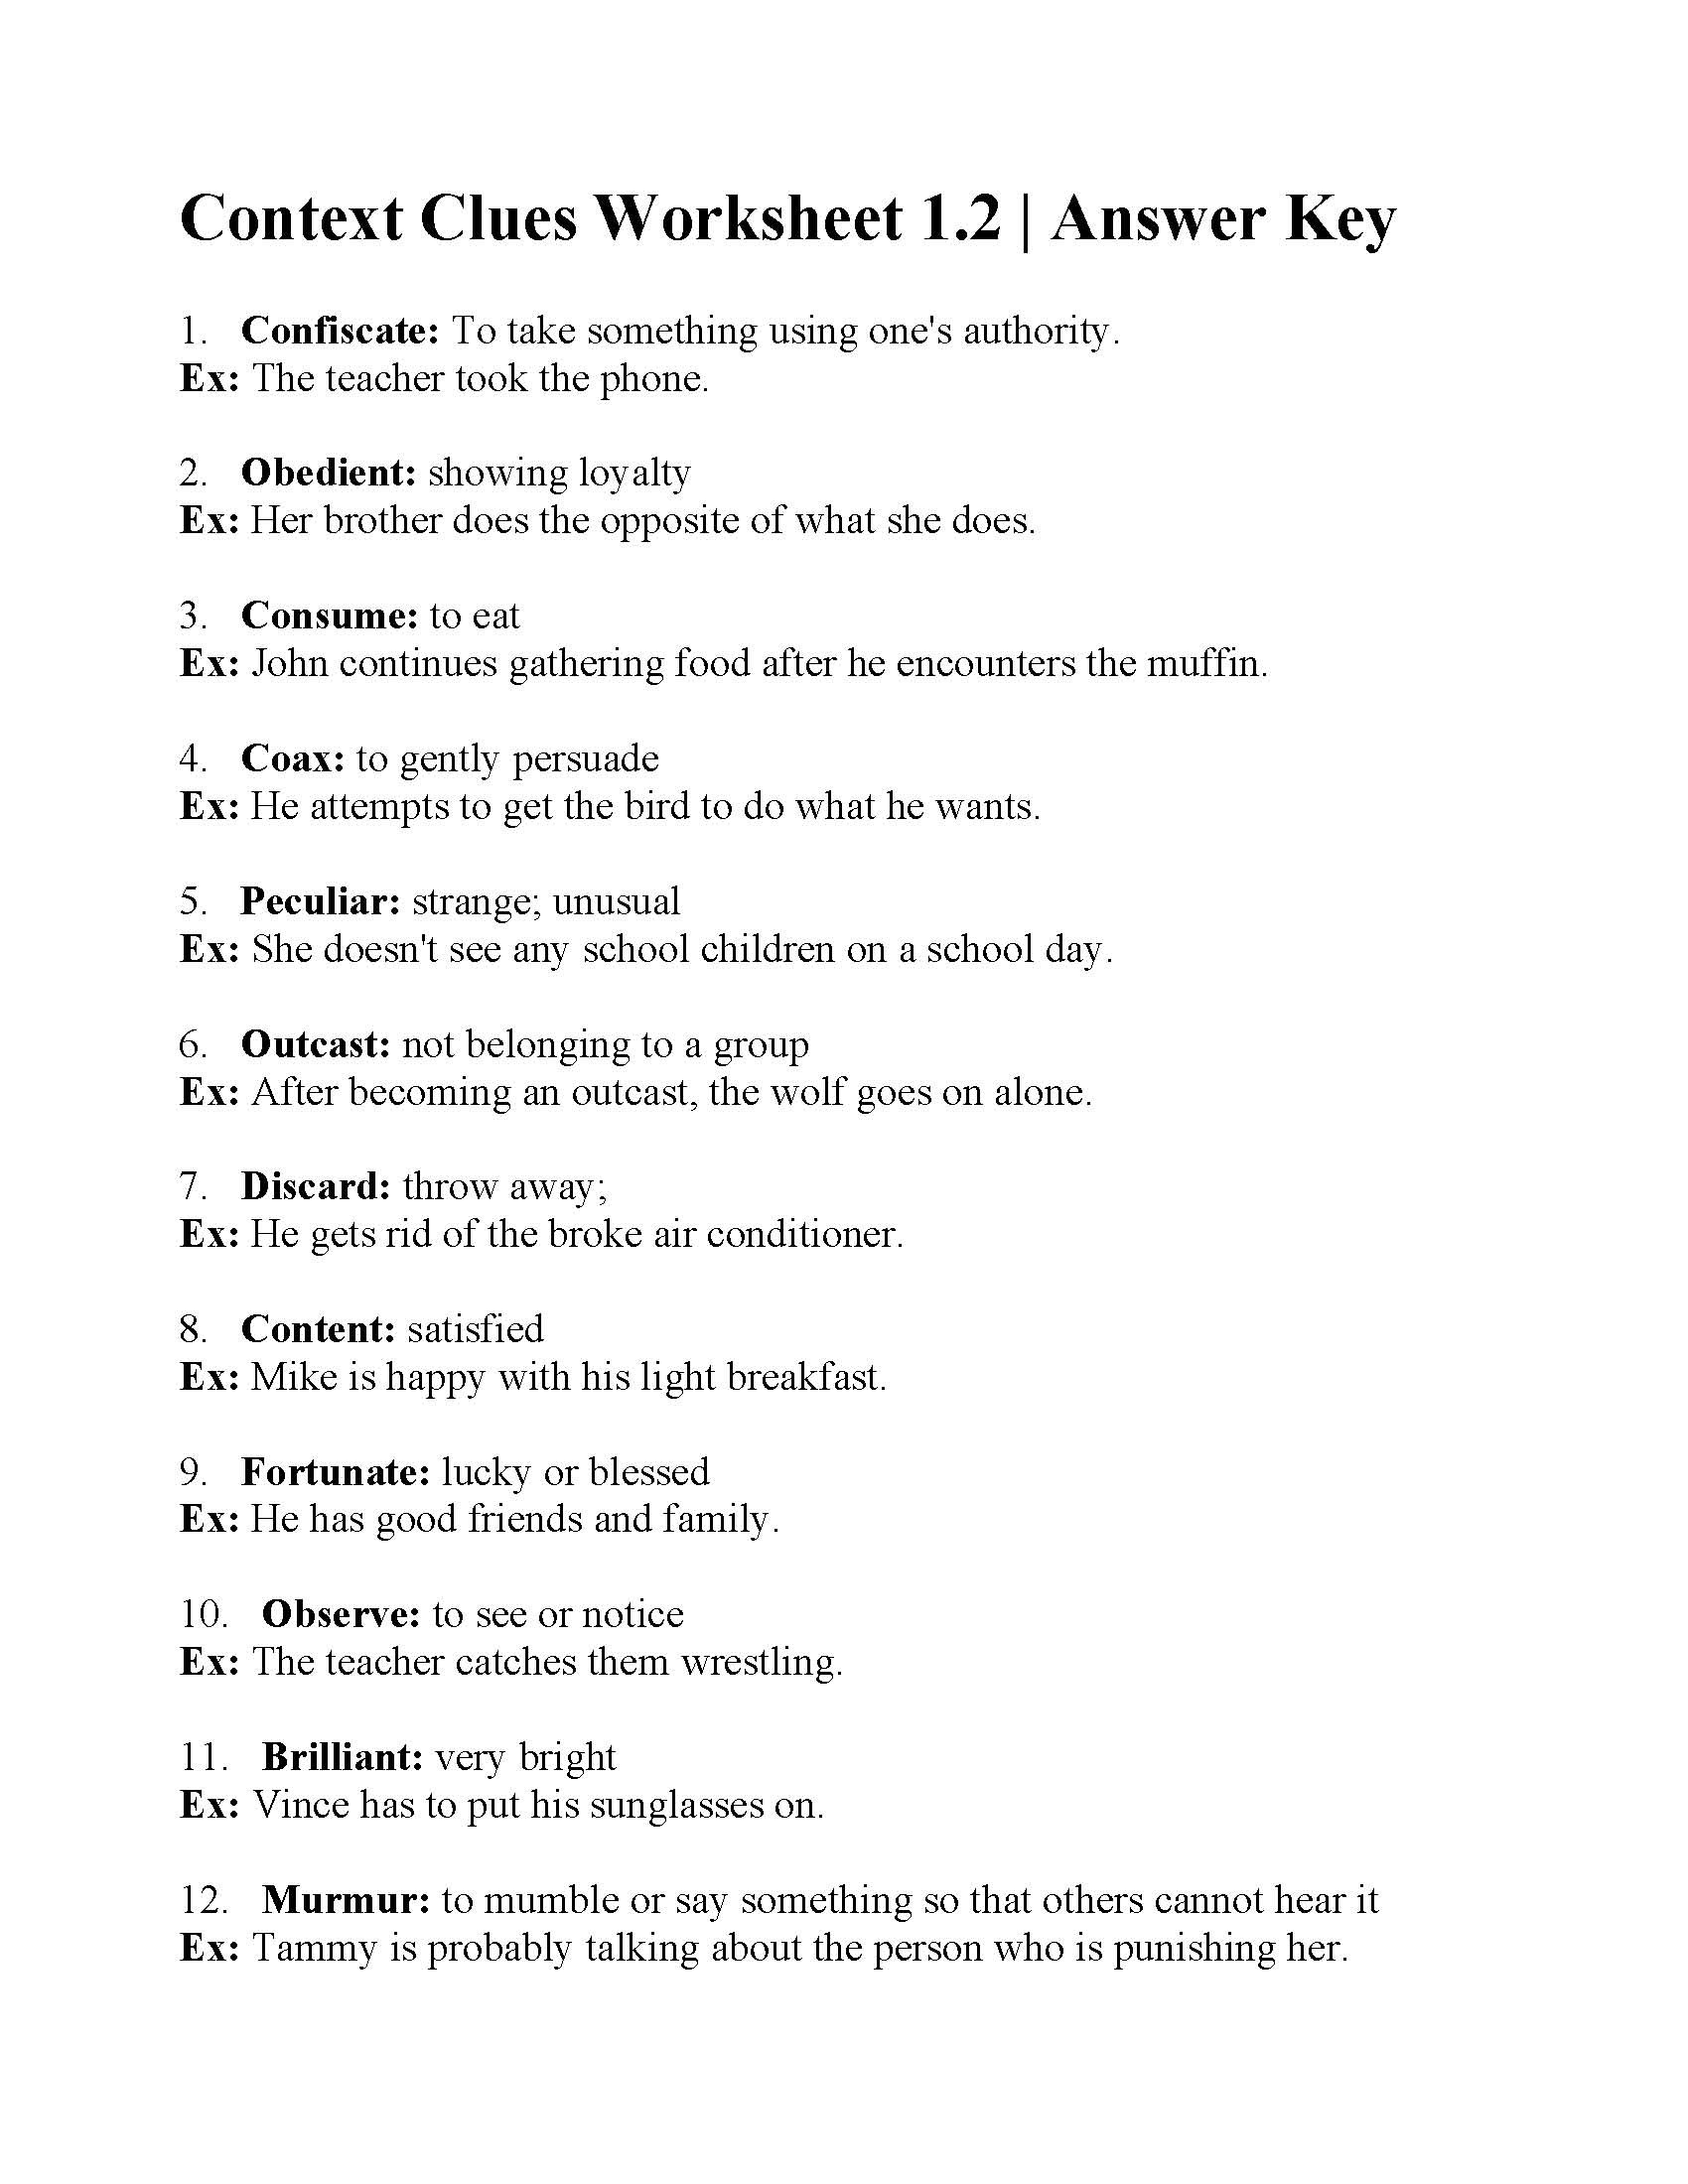 Context Clues Worksheets Second Grade Grade 7 Work Ancient Greek Maths Worksheets A and An